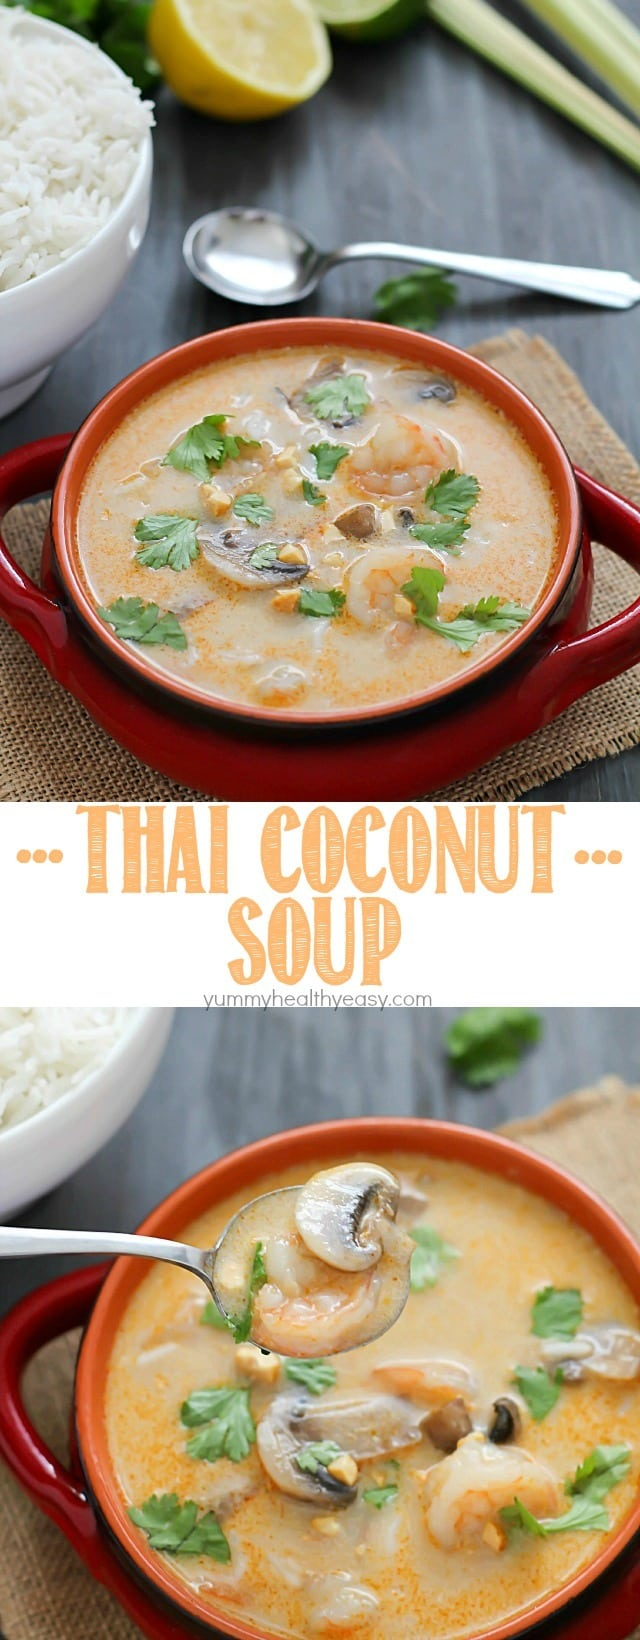 Make your favorite Thai take-out at home with this Thai Coconut Soup. A crazy delicious coconut broth with shrimp, mushrooms and rice - it's comfort food at its finest! {Mystery Basket Challenge}